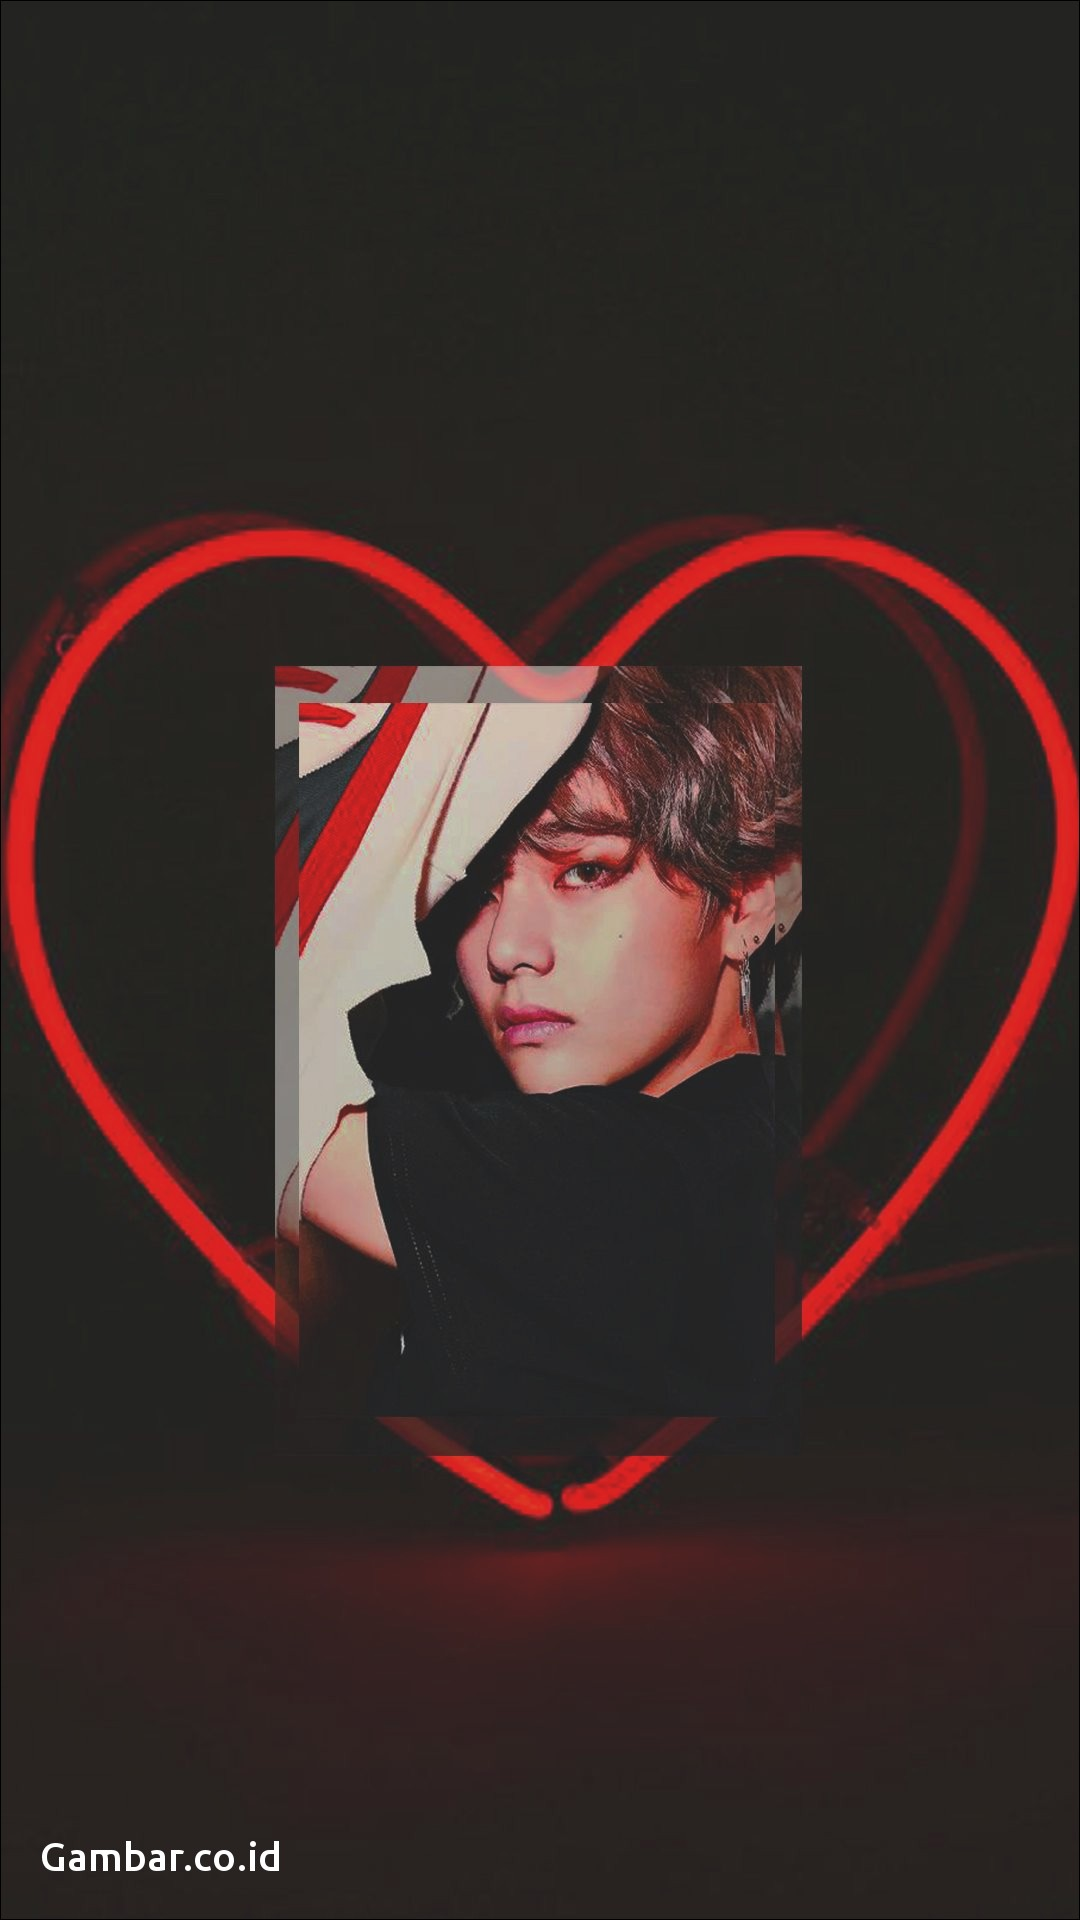 Kim Taehyung Aesthetic Wallpaper Iphone Wallpaper Bts Aesthetic 364426 Hd Wallpaper Backgrounds Download